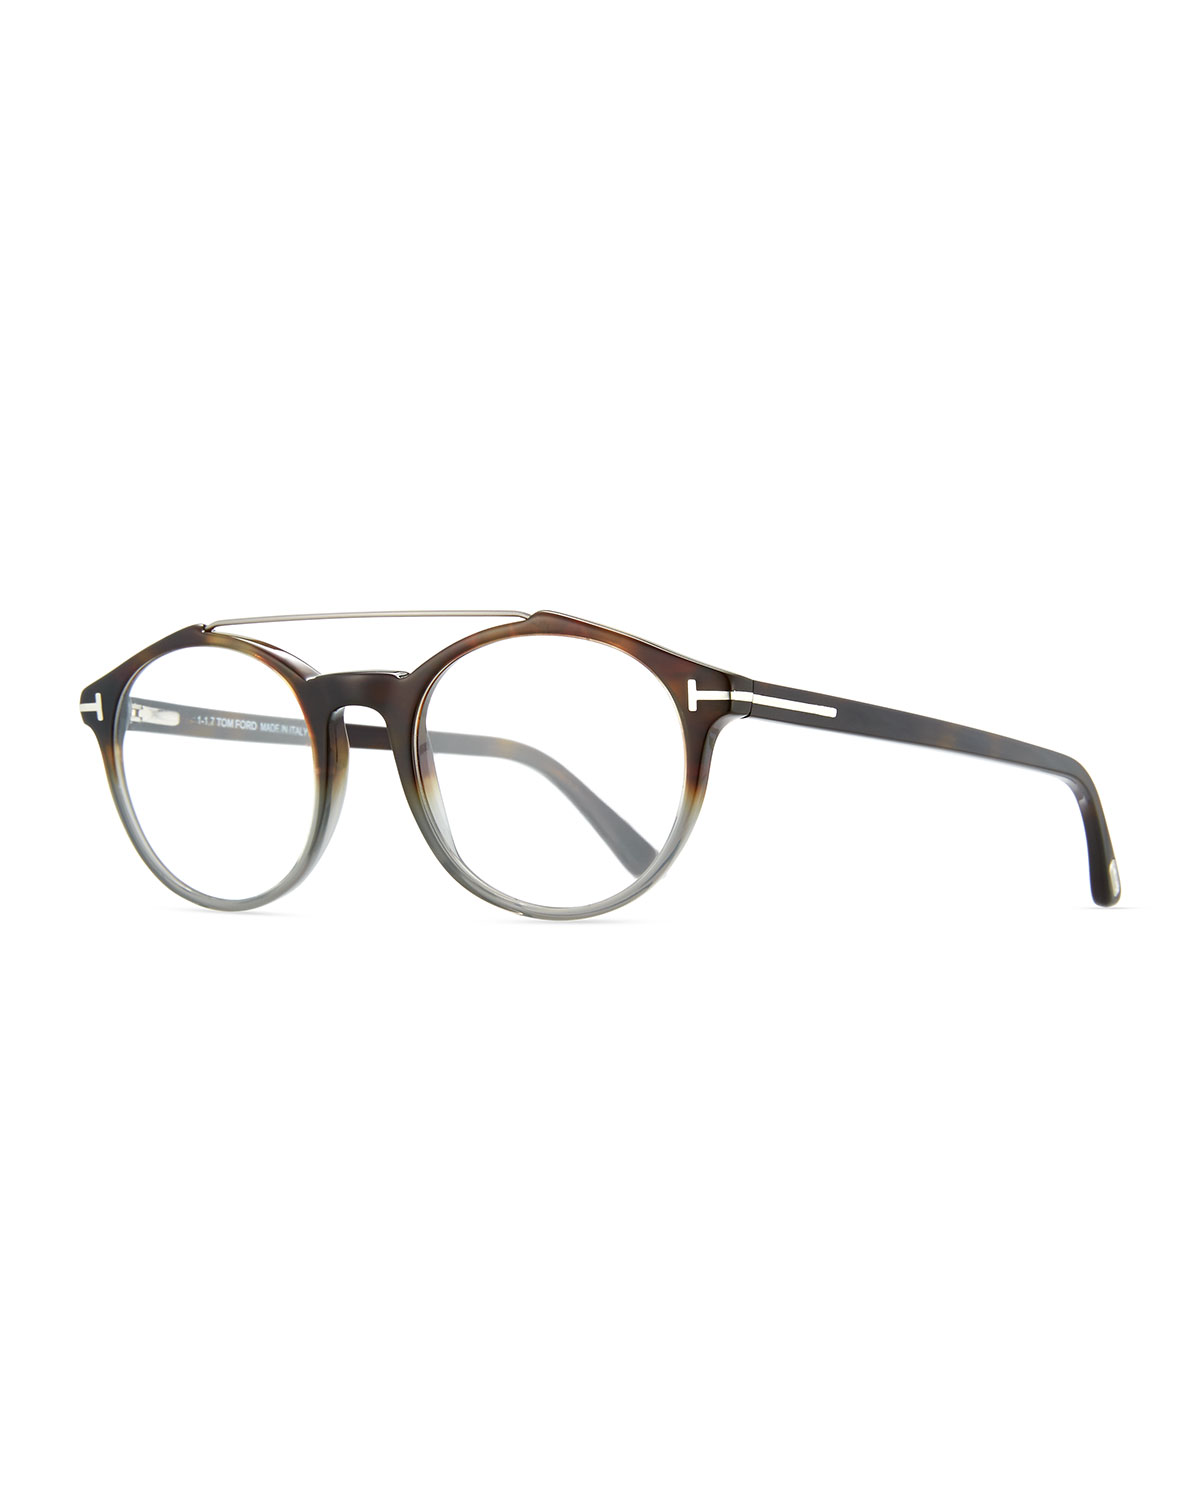 d3f9a5159c4d TOM FORD Round Acetate Optical Frames with Brow Bar